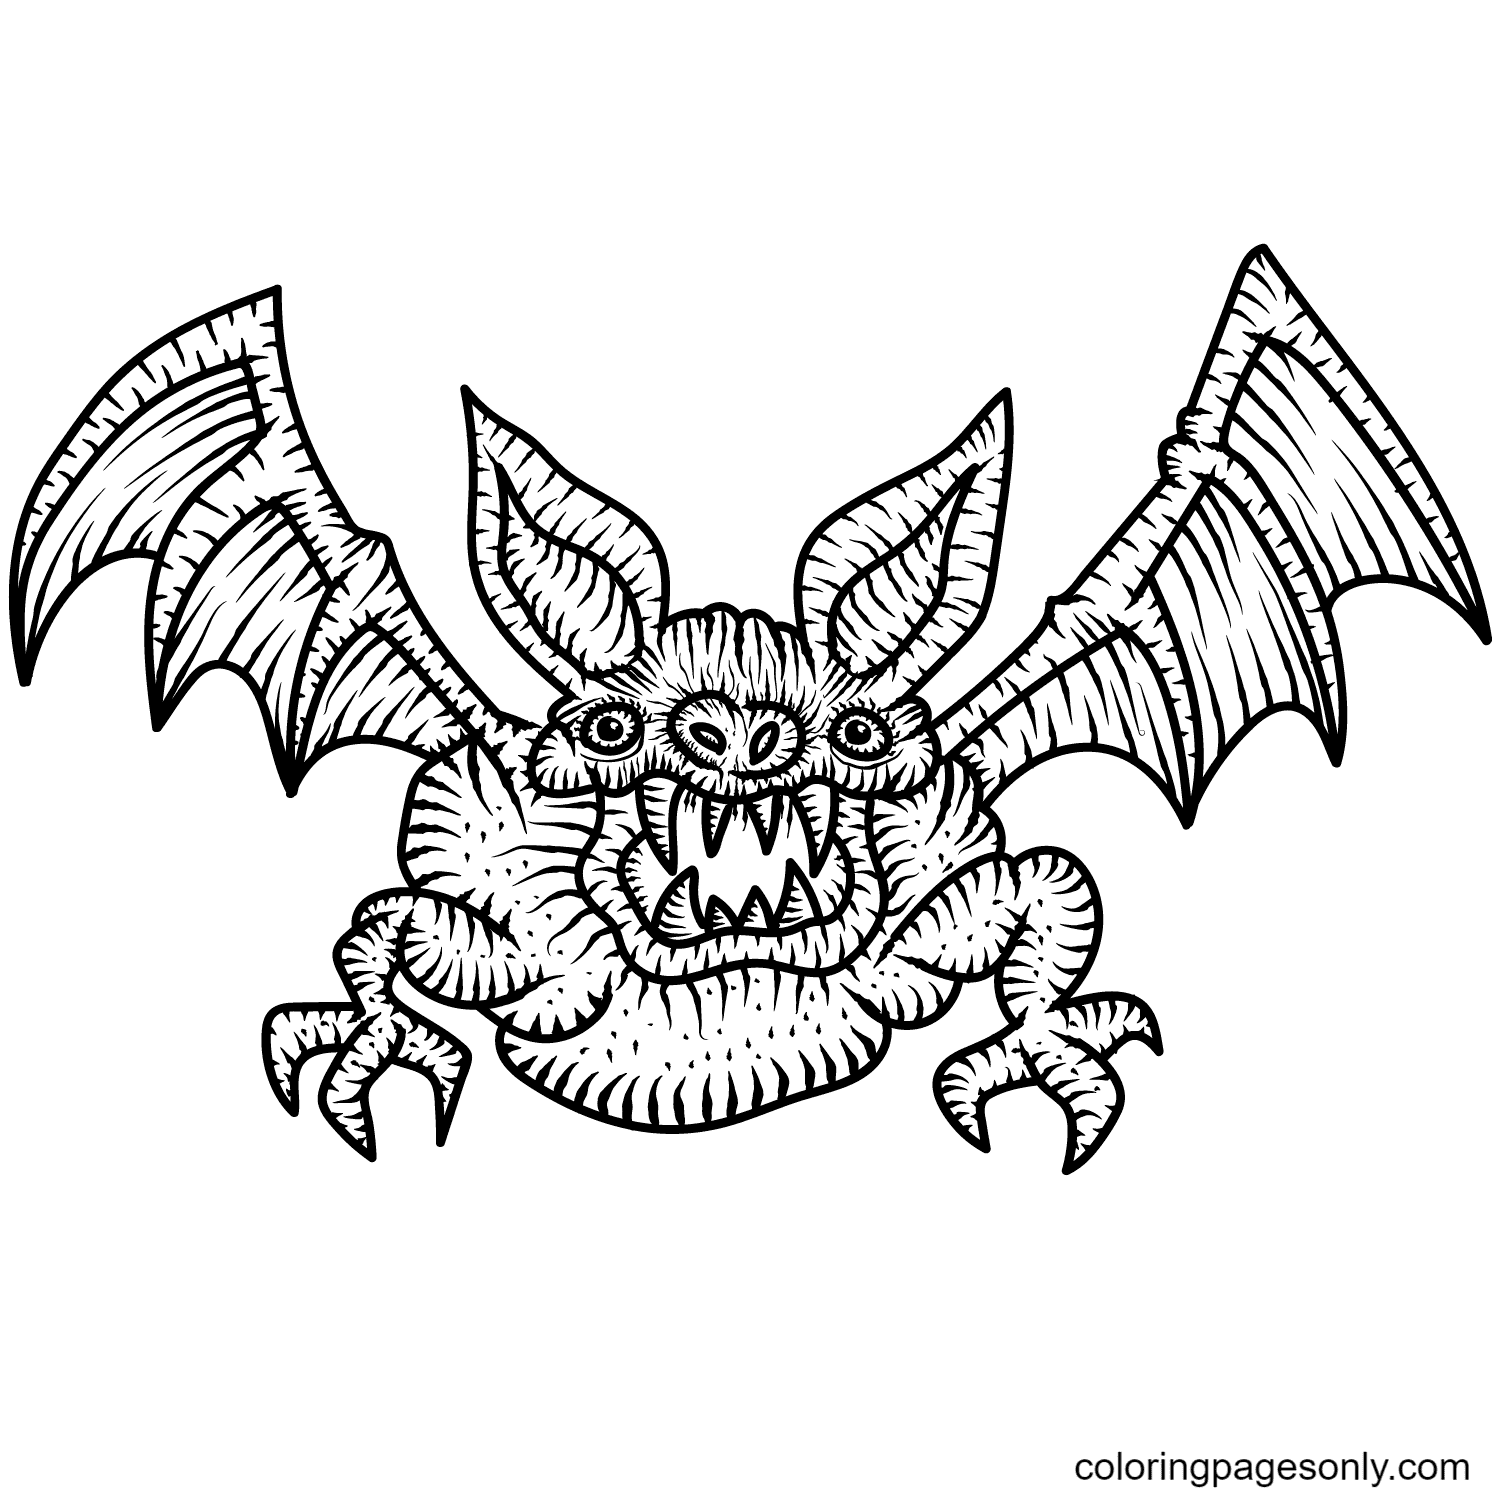 Scary Bat Coloring Page